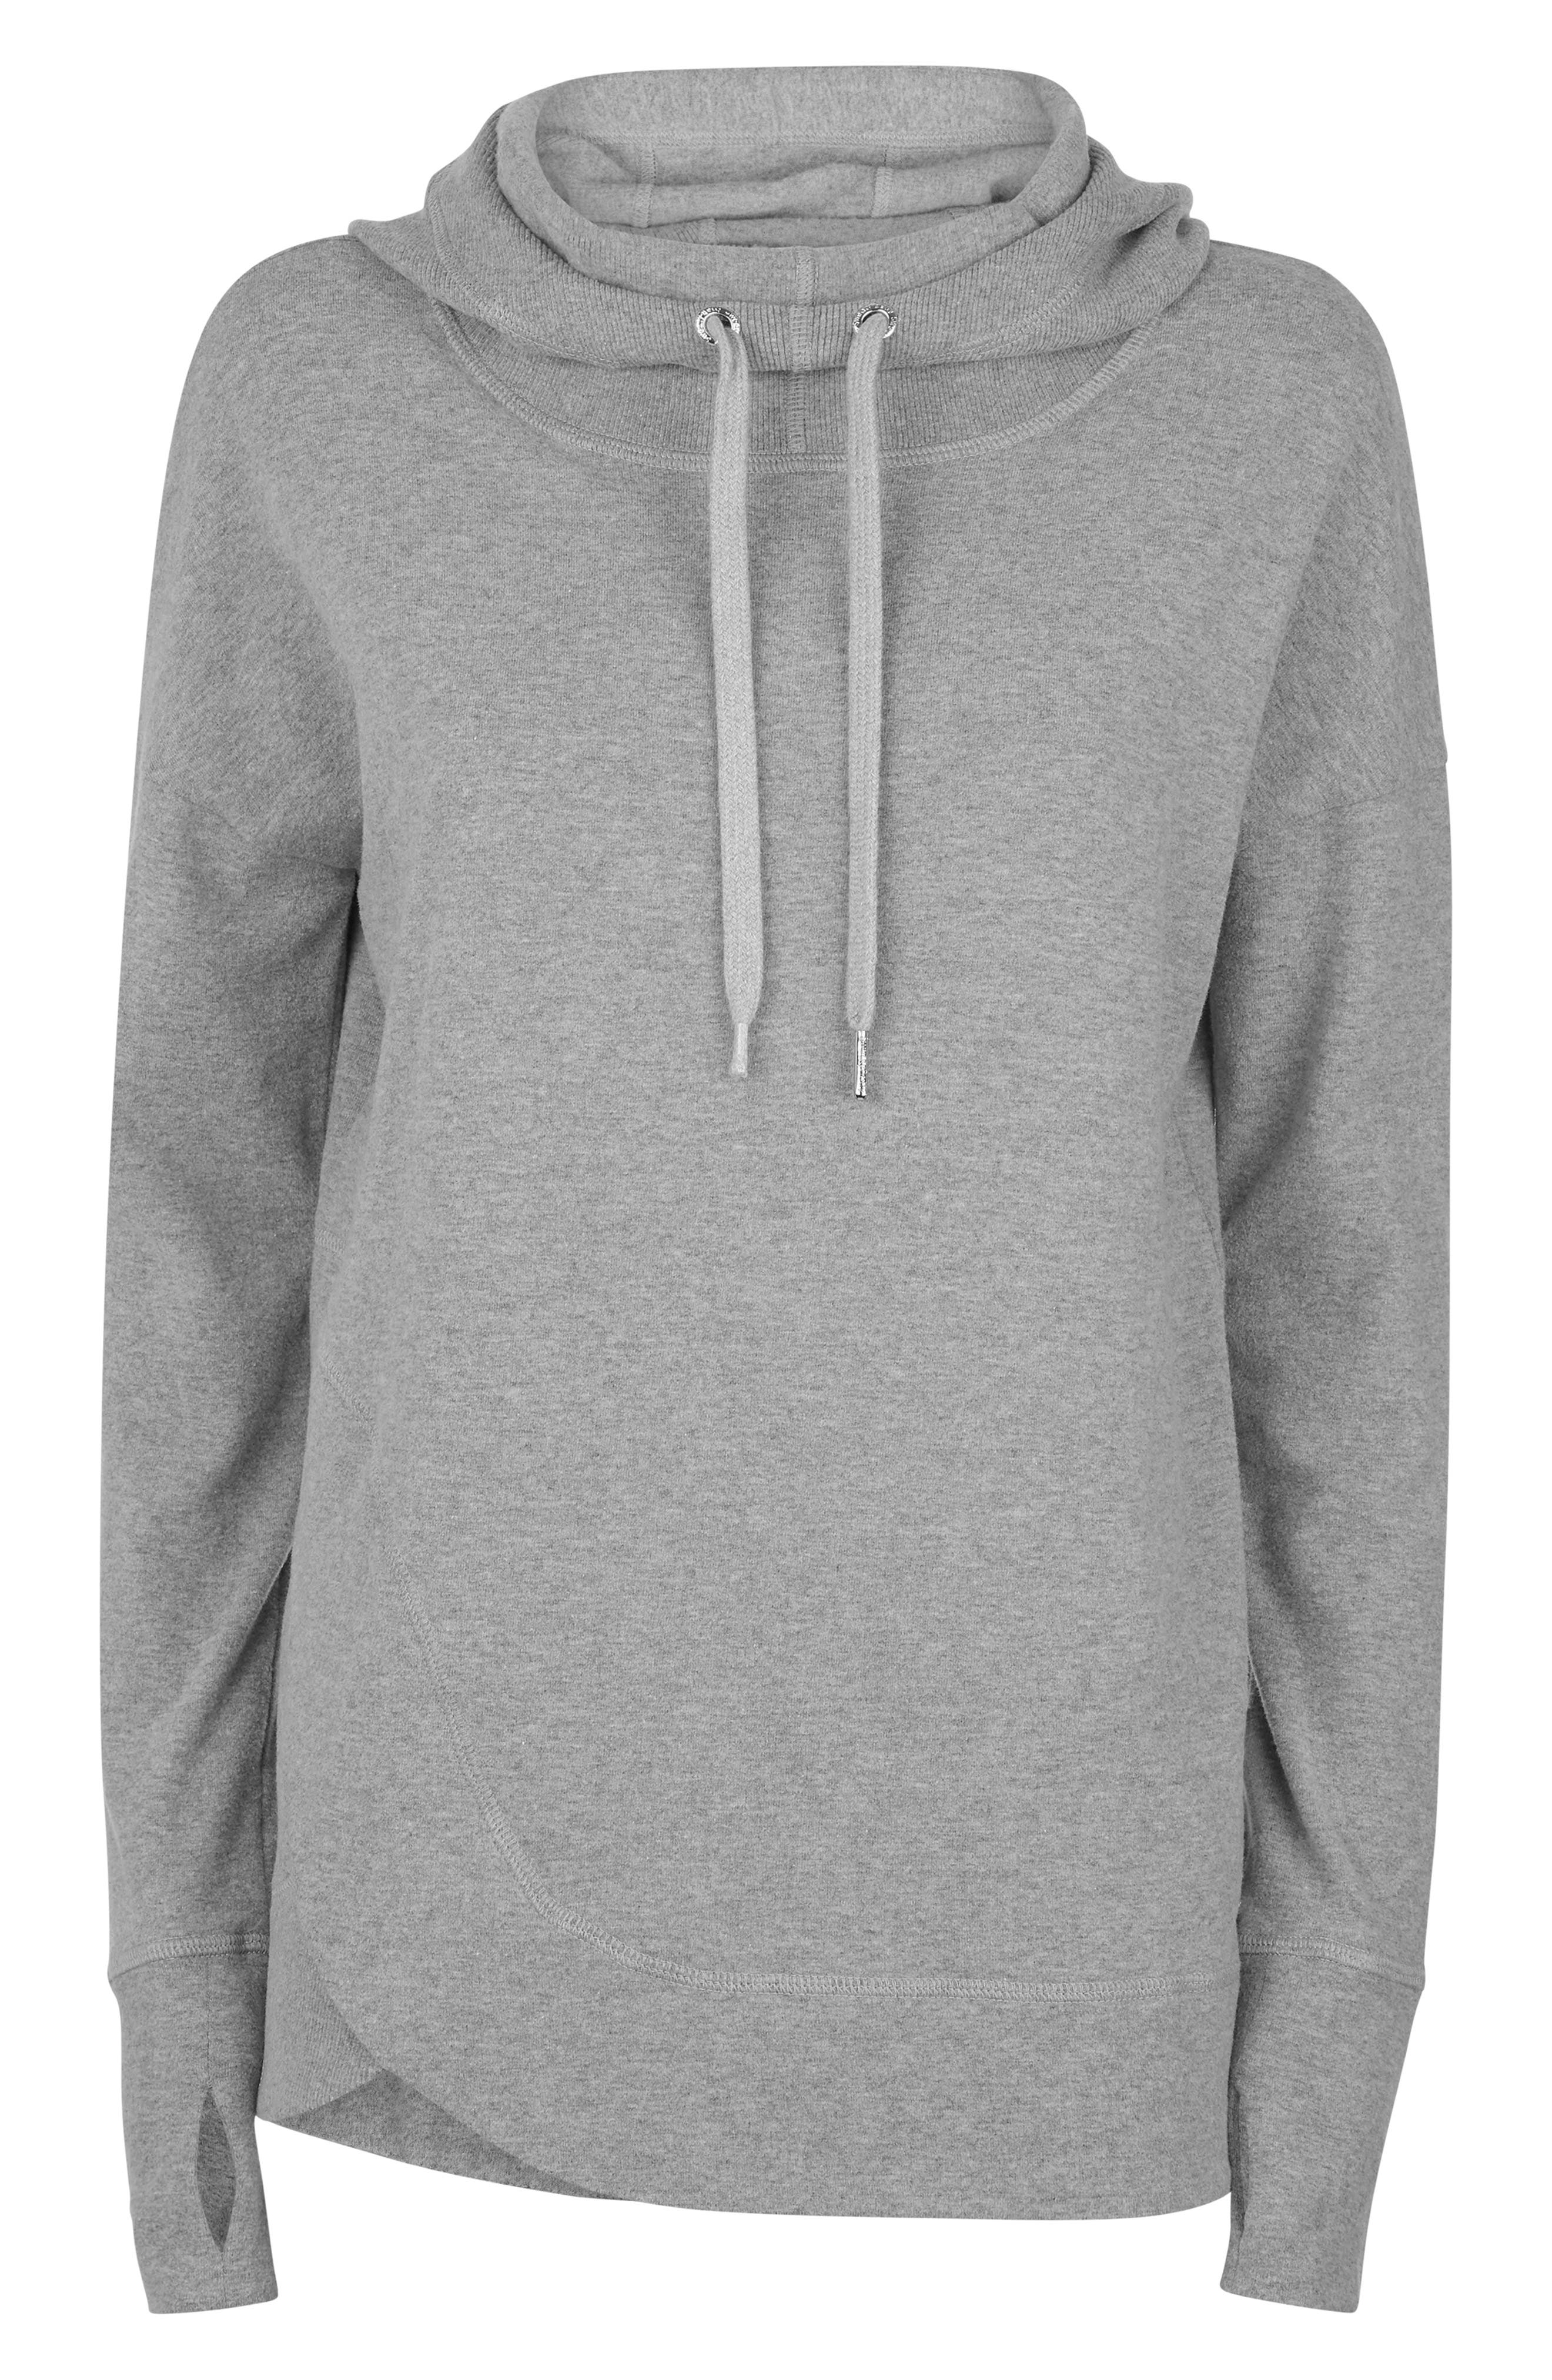 Invigorate Luxe Hoodie,                             Alternate thumbnail 4, color,                             LIGHT GREY MARL